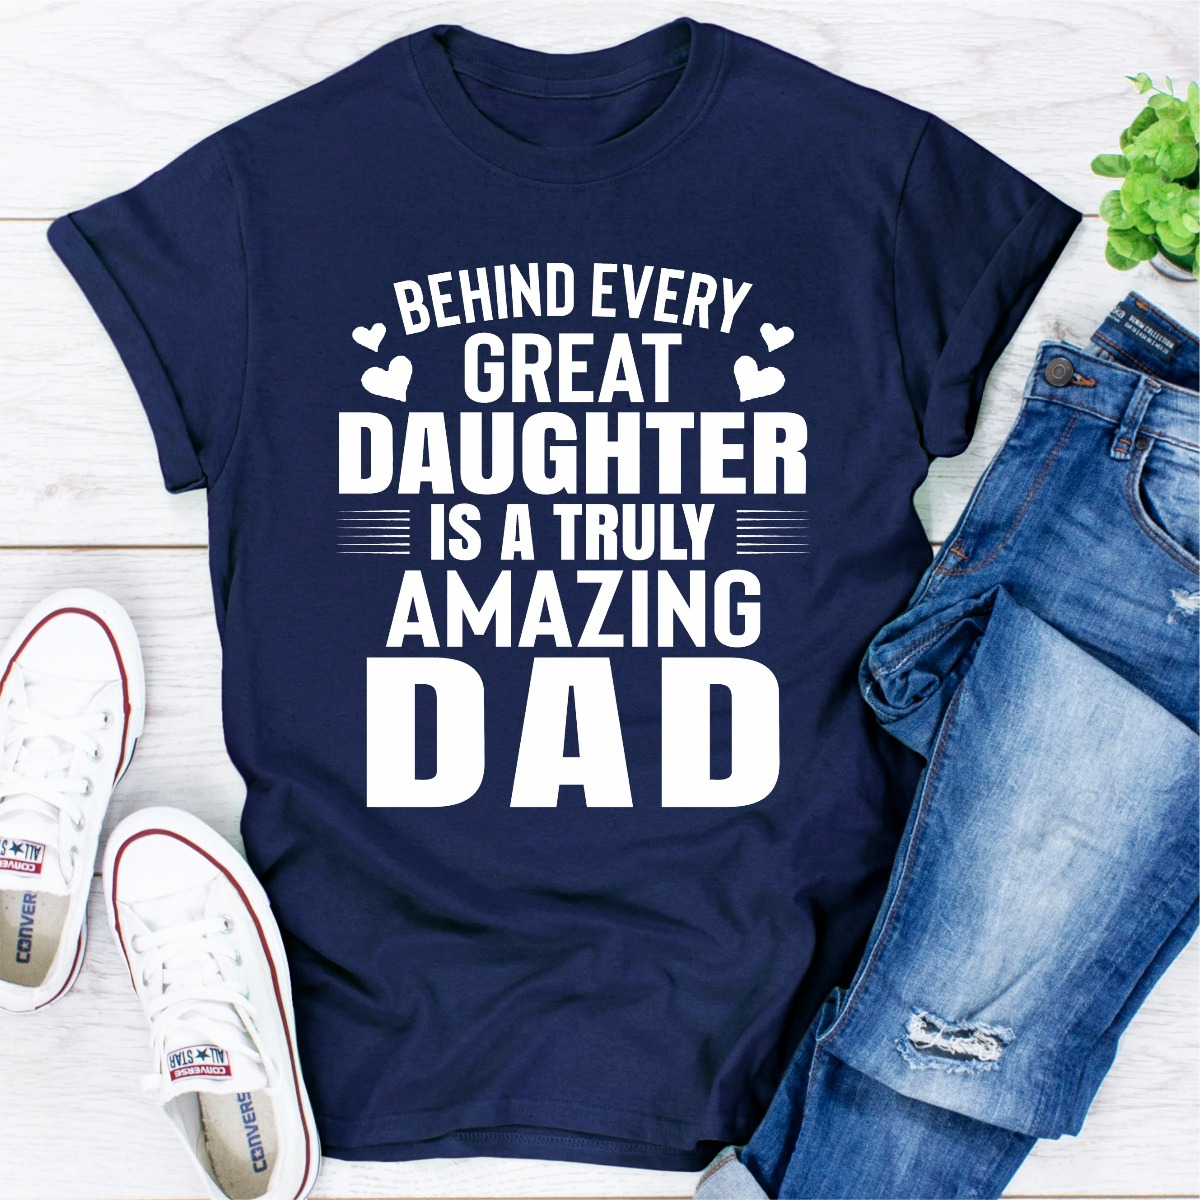 Behind Every Great Daughter Is A Truly Amazing Dad (Navy / 3Xl)